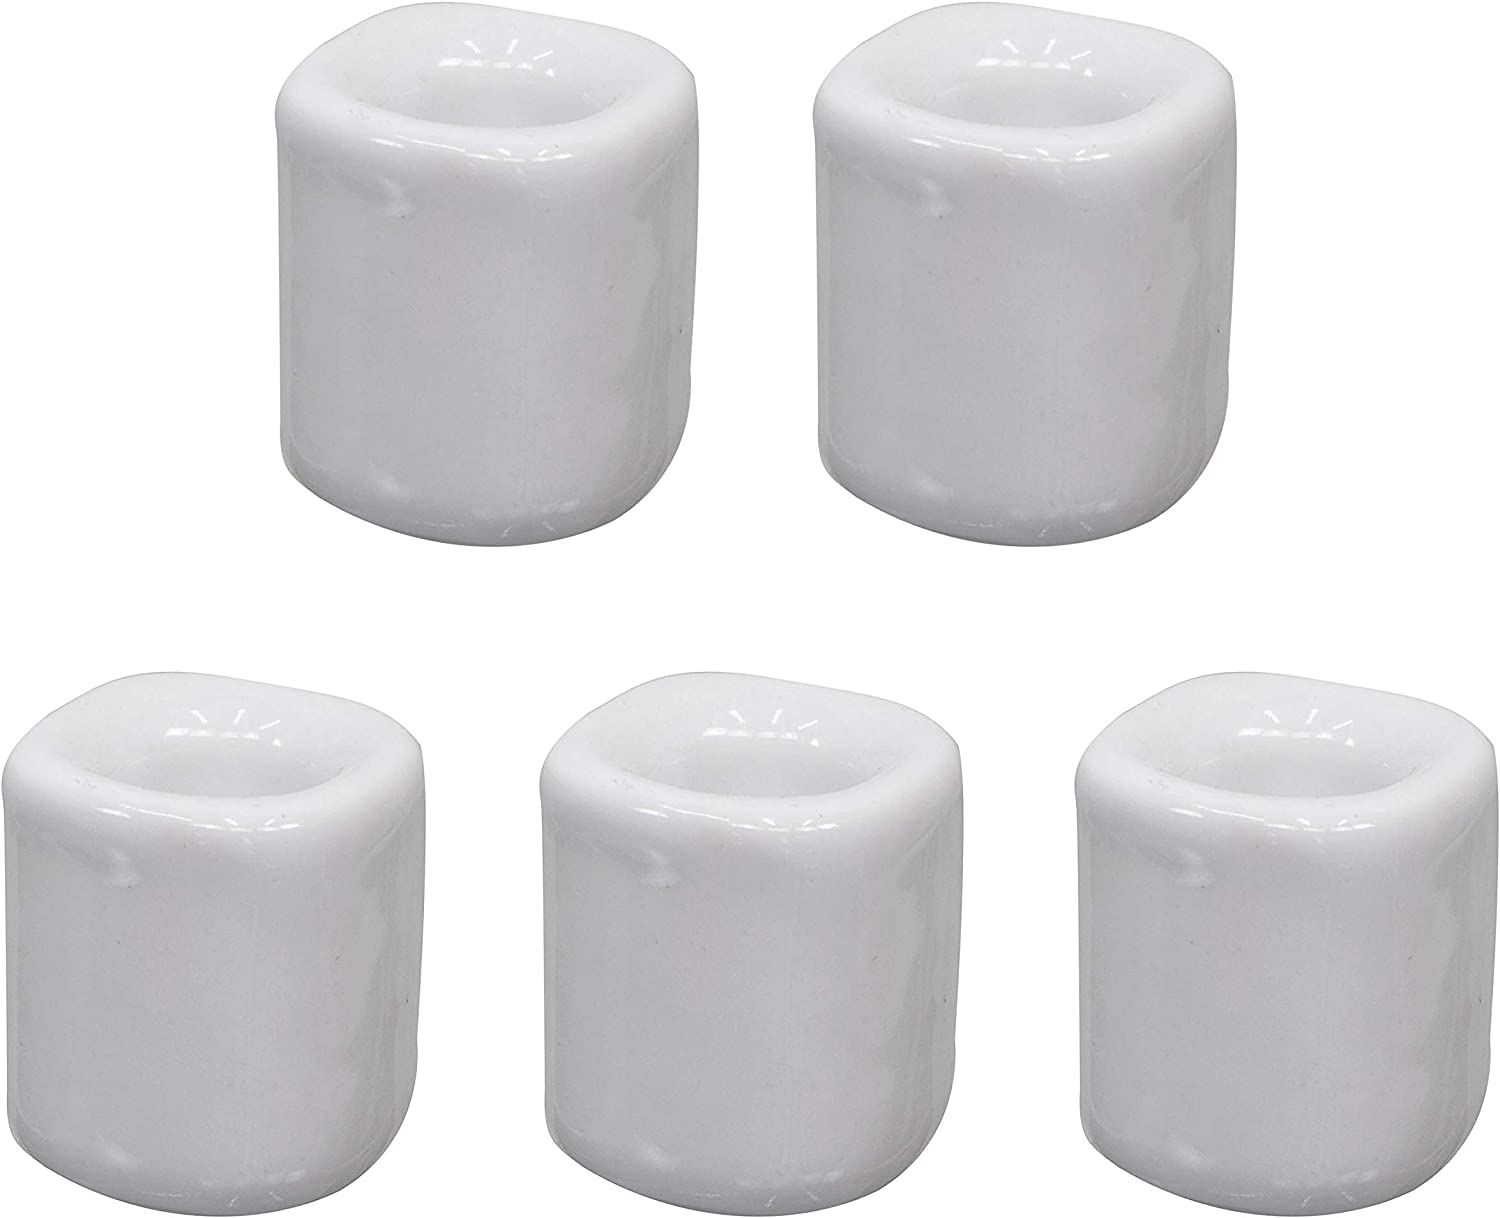 Pack of Indefinitely 10 Clarity Muse New product Ceramic Candle Ritual Hold Chime Spell